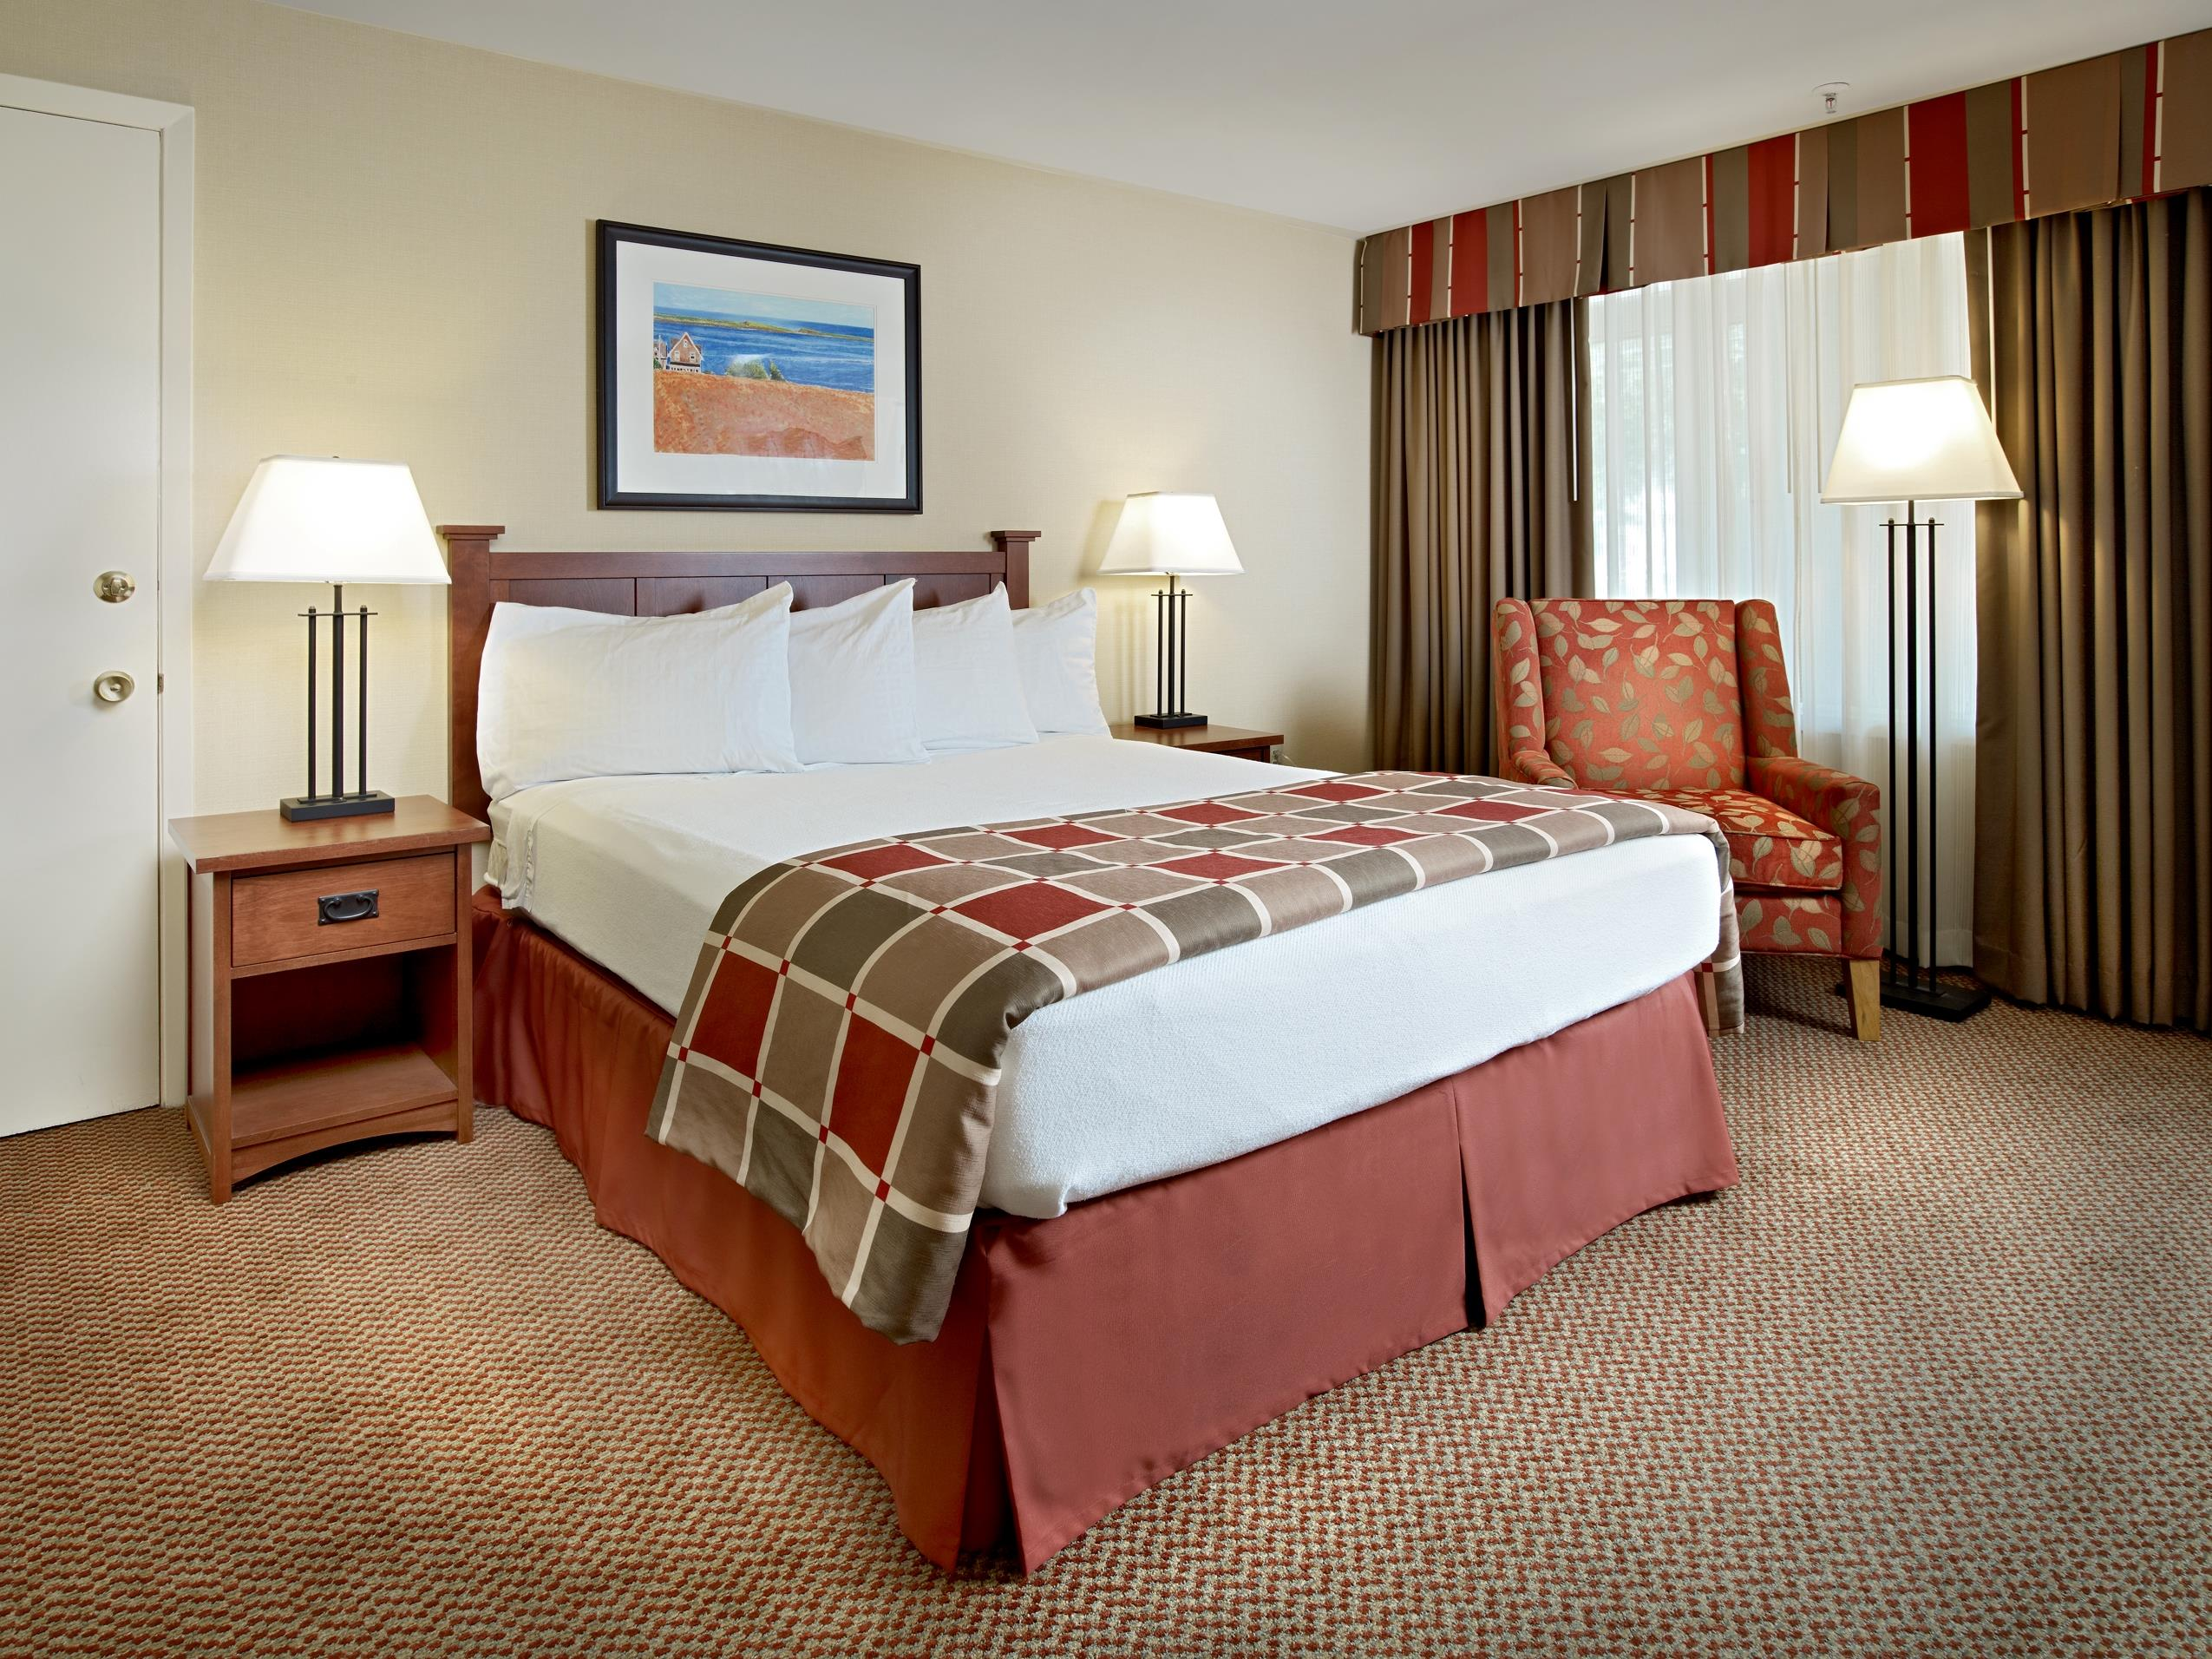 Charlottetown Inn & Conference Centre in Charlottetown: Queen Bed Guest Room